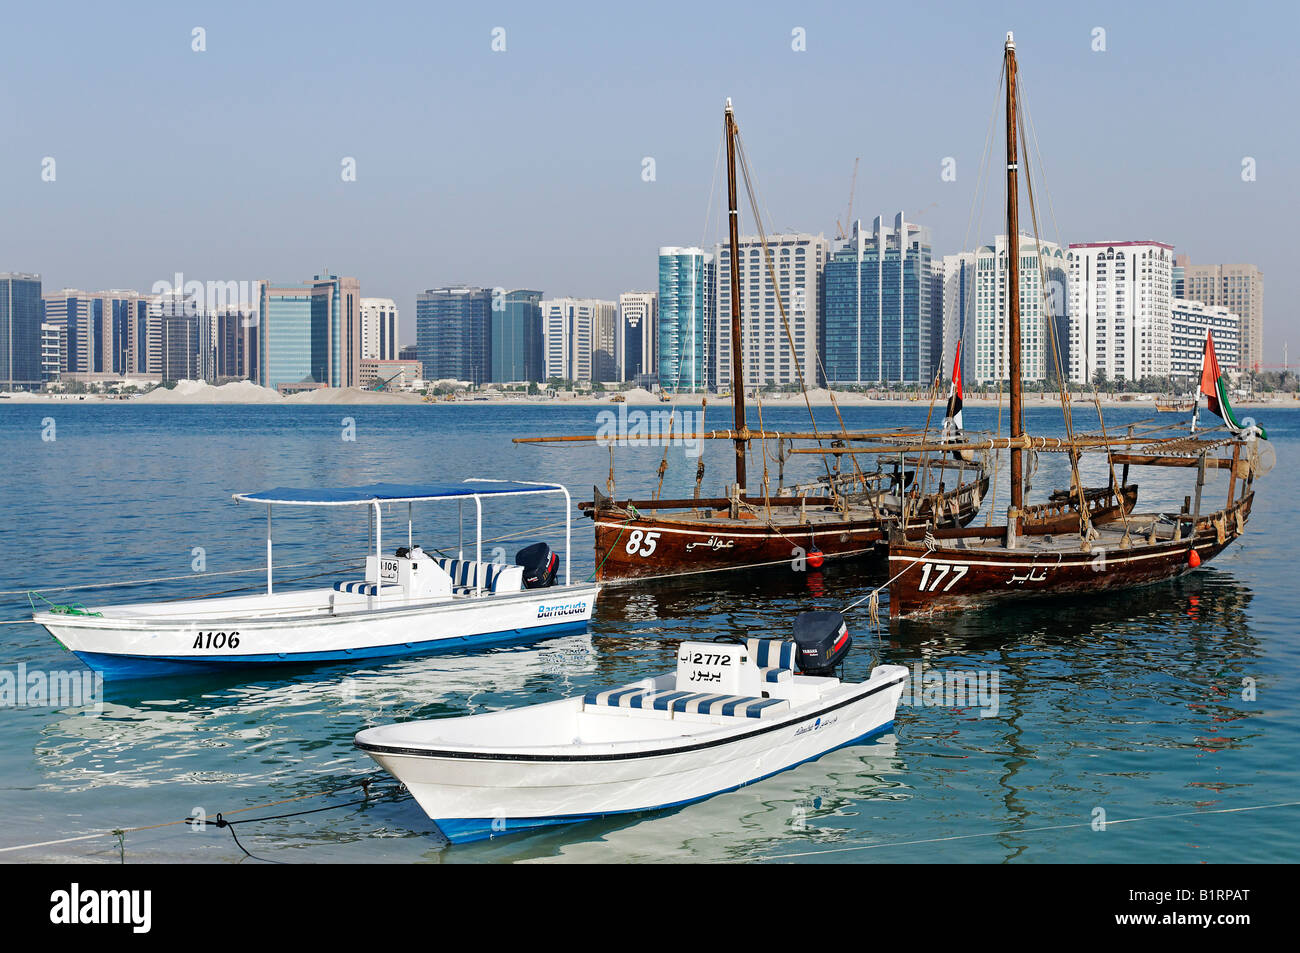 Skyline of the Abu Dhabi City, Emirat Abu Dhabi, United Arab Emirates, Asia Stock Photo